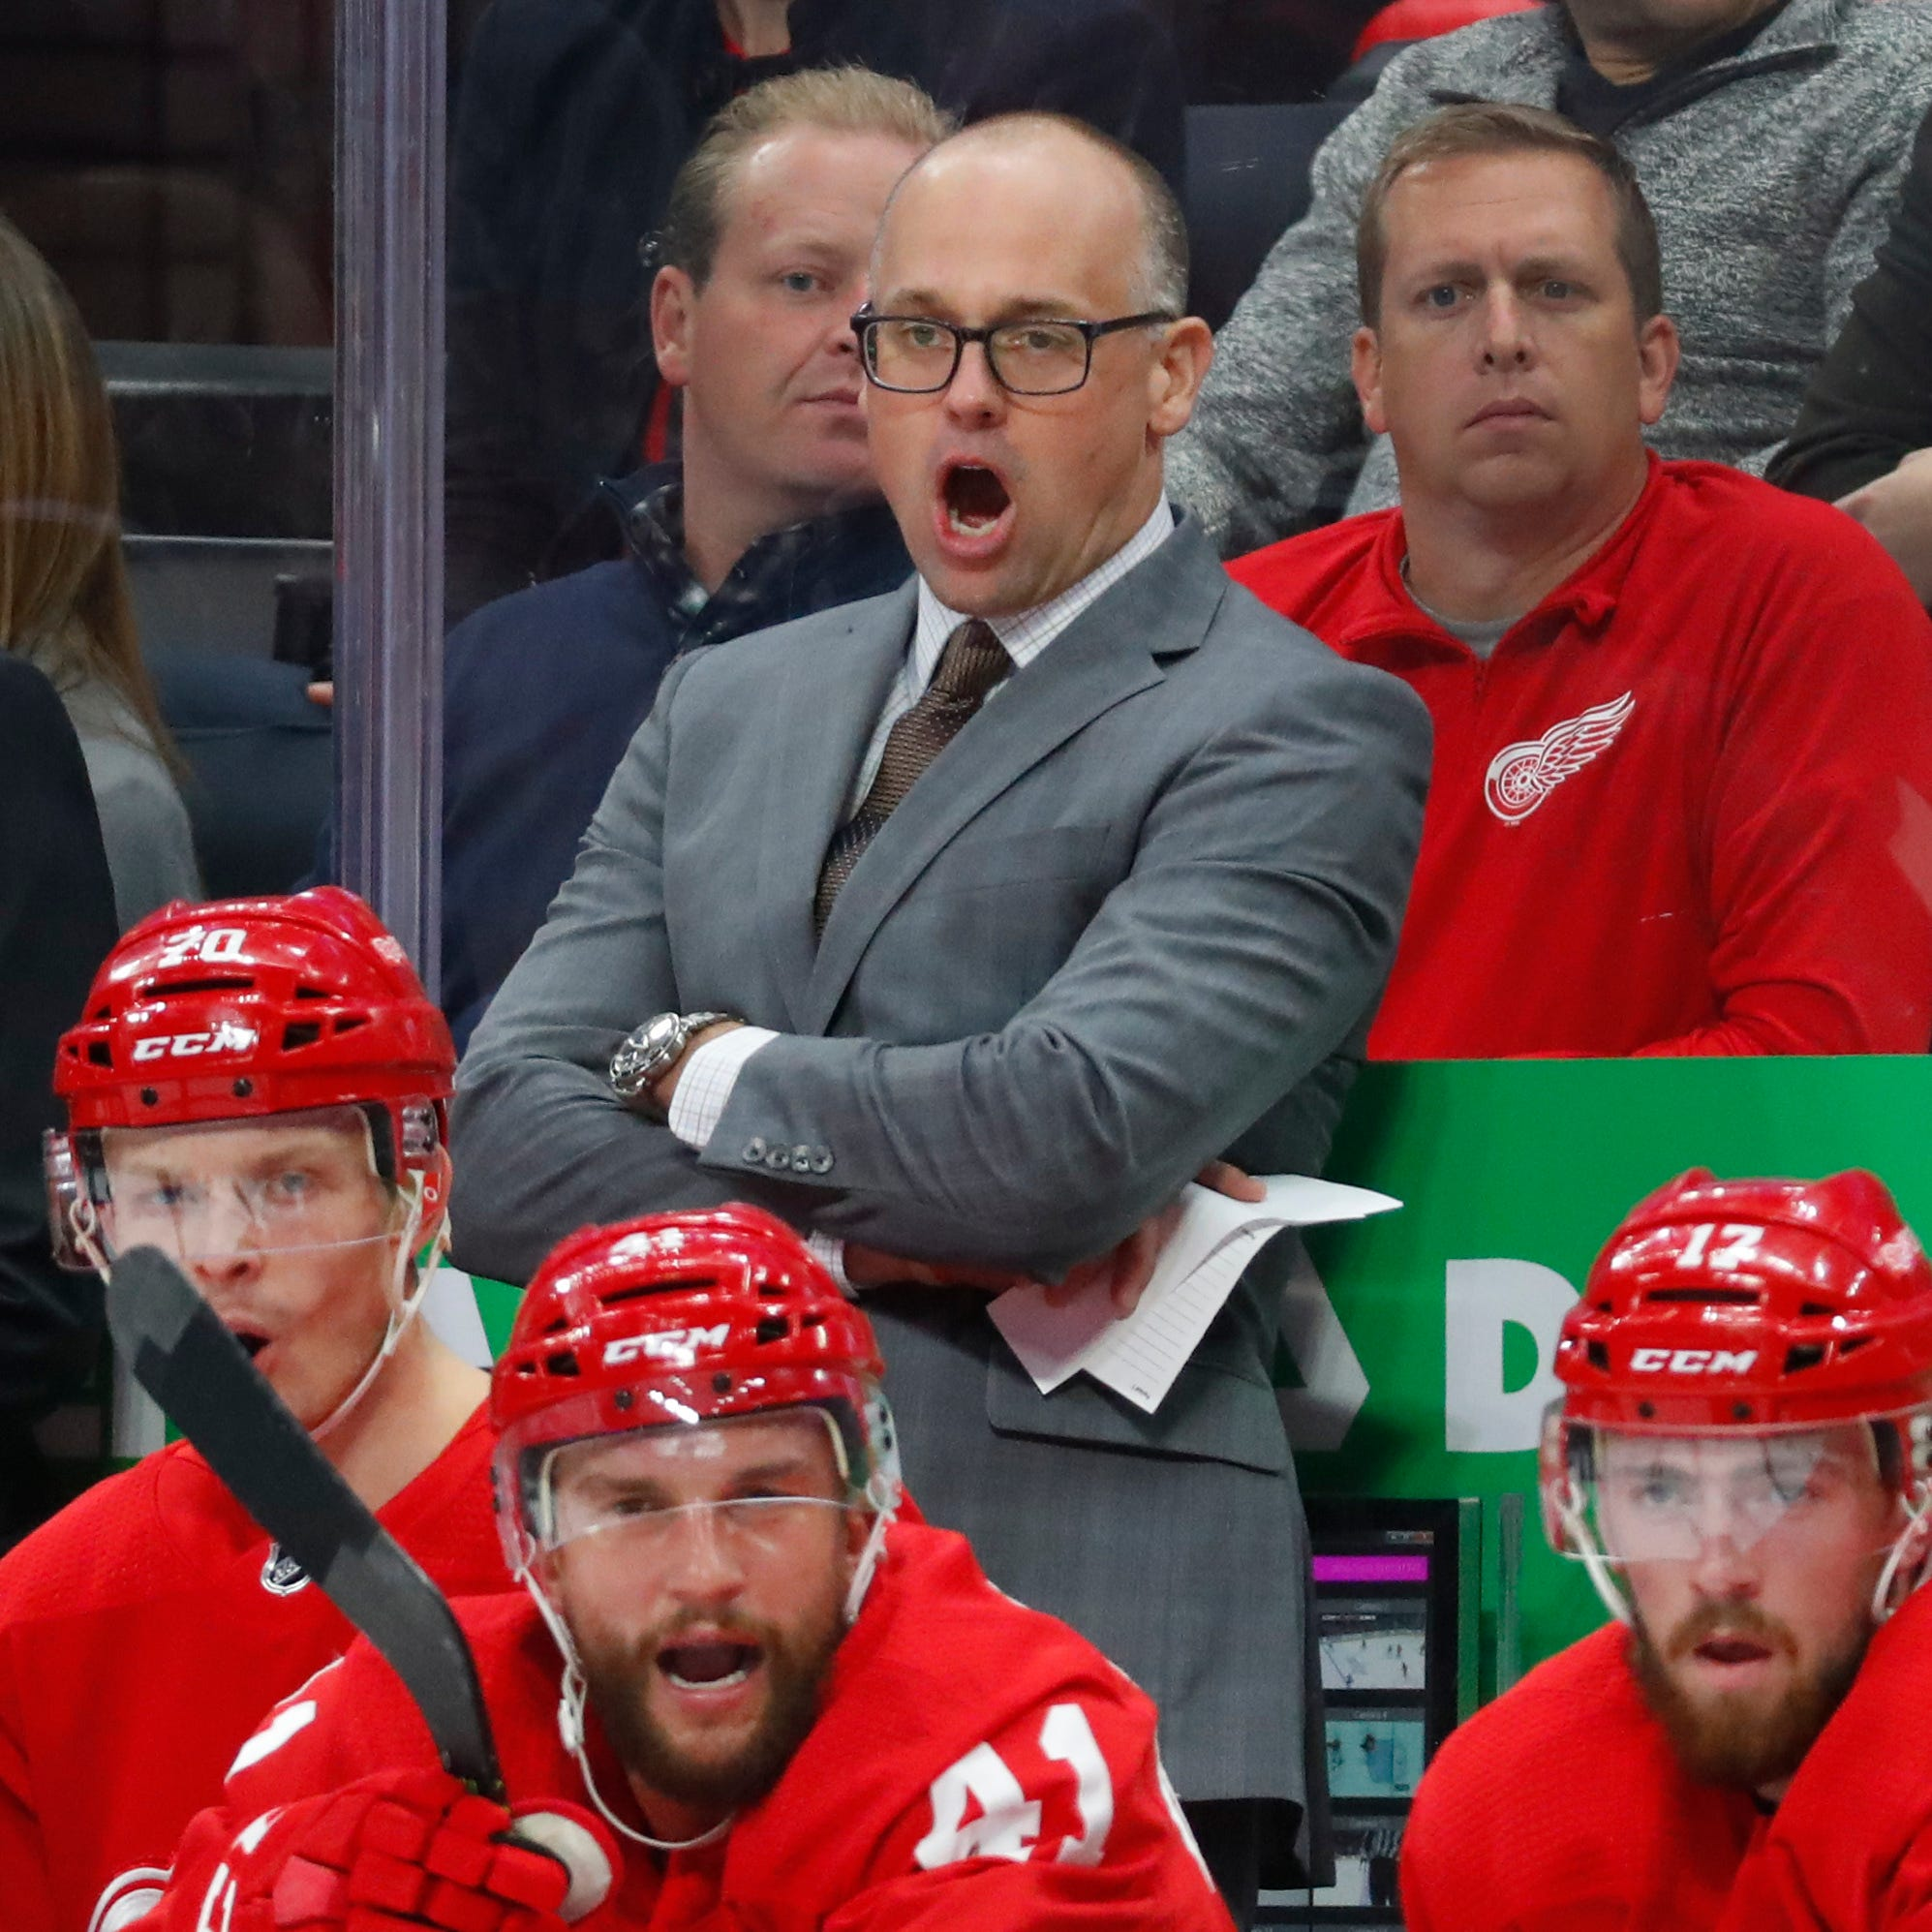 Detroit Red Wings' Jeff Blashill: 'Great to hear' Yzerman believes in me